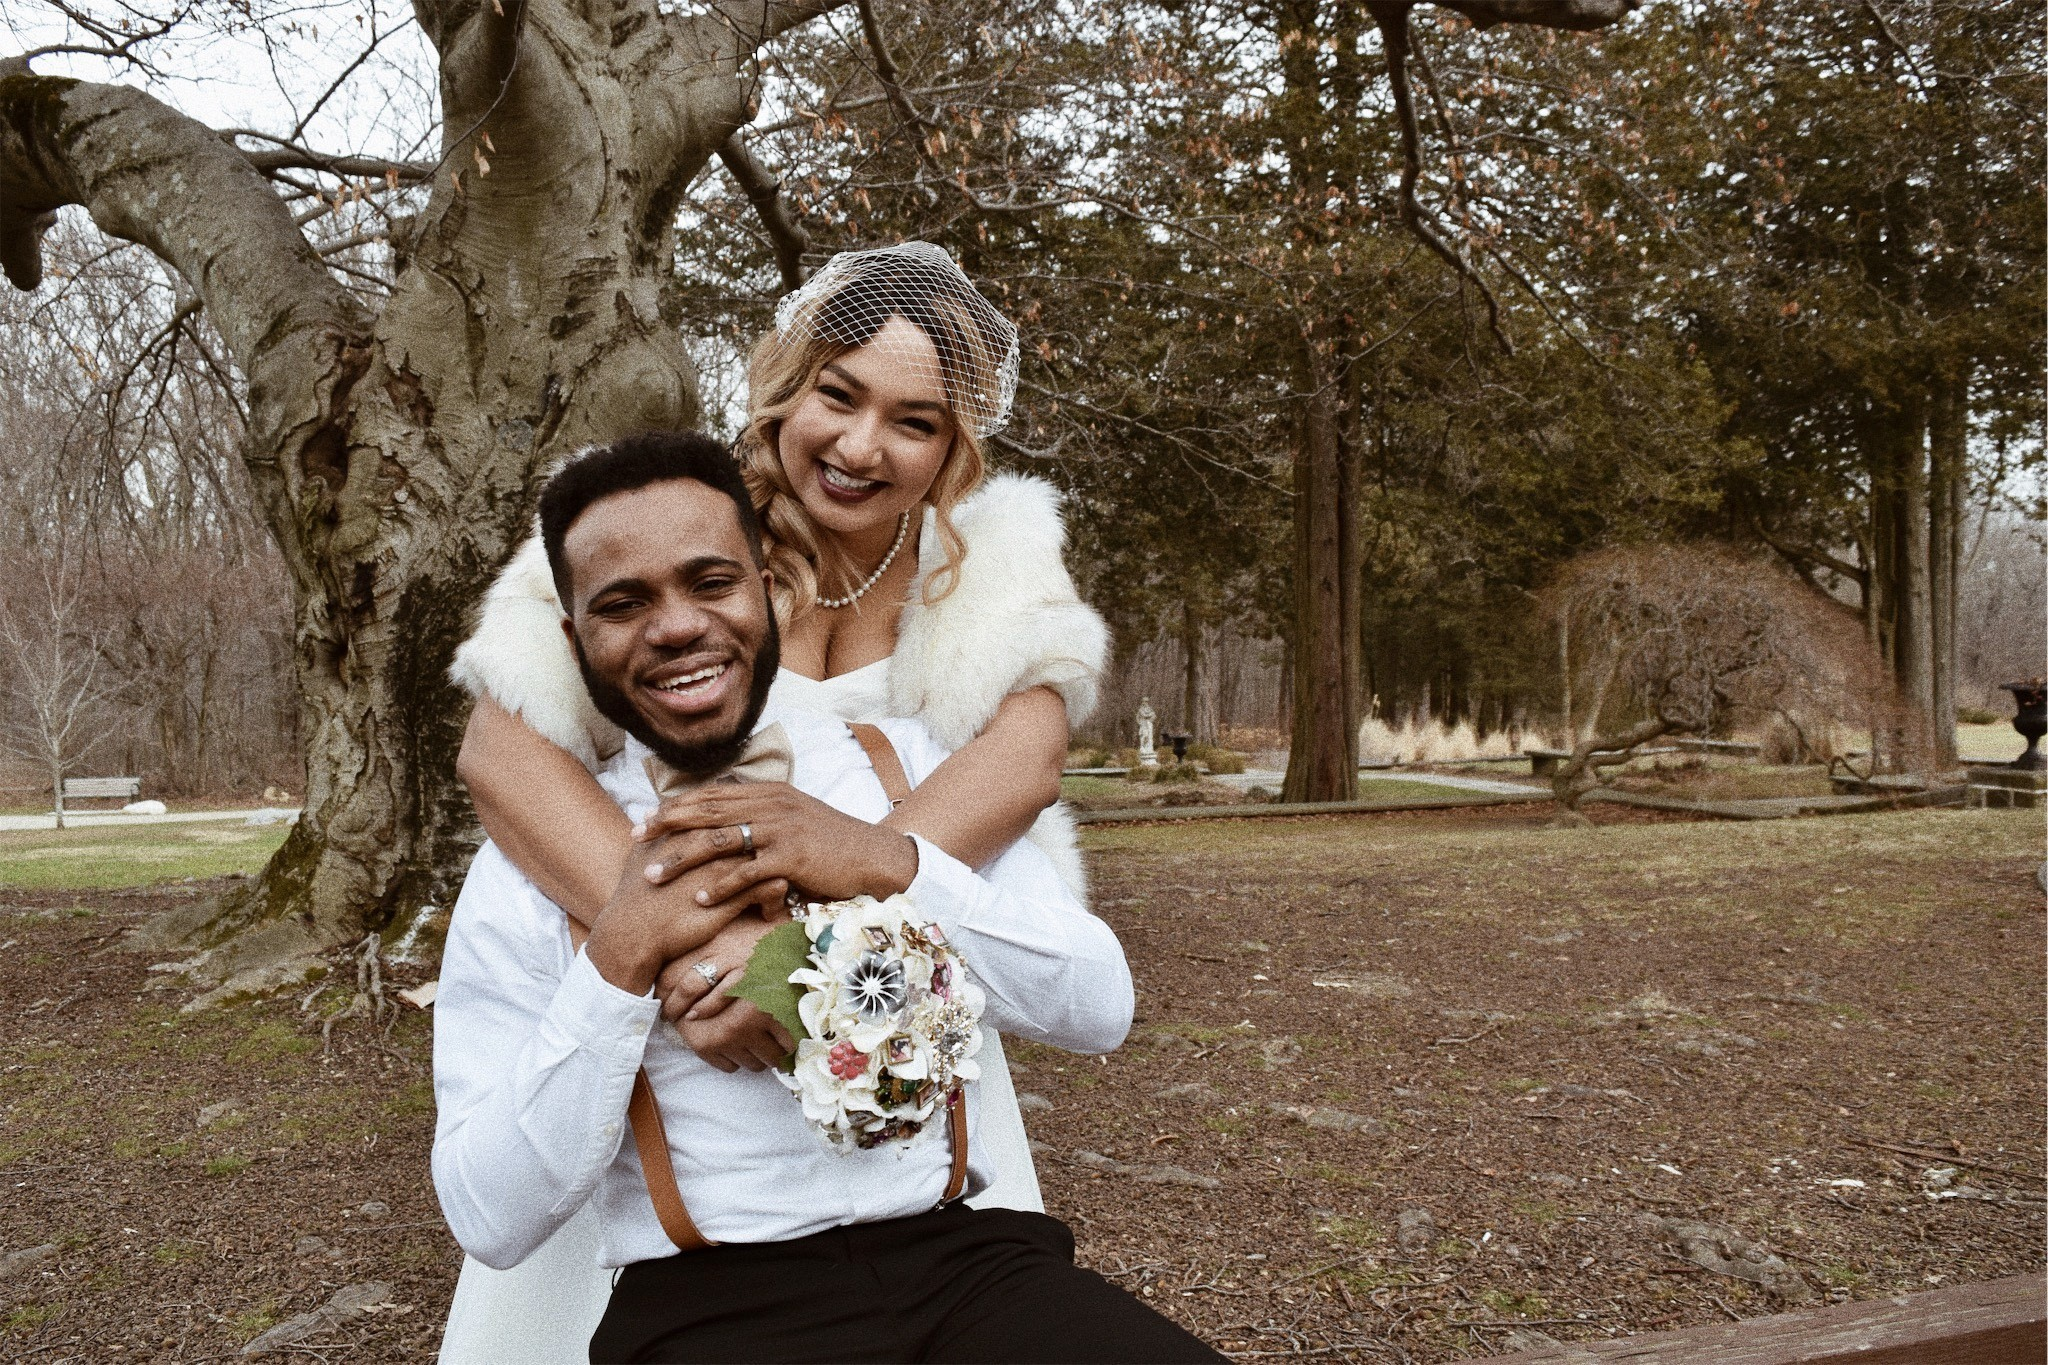 Photos Nigerian singer, Lamboginny and his woman Taccara Rae tie the knot in vintage fashion